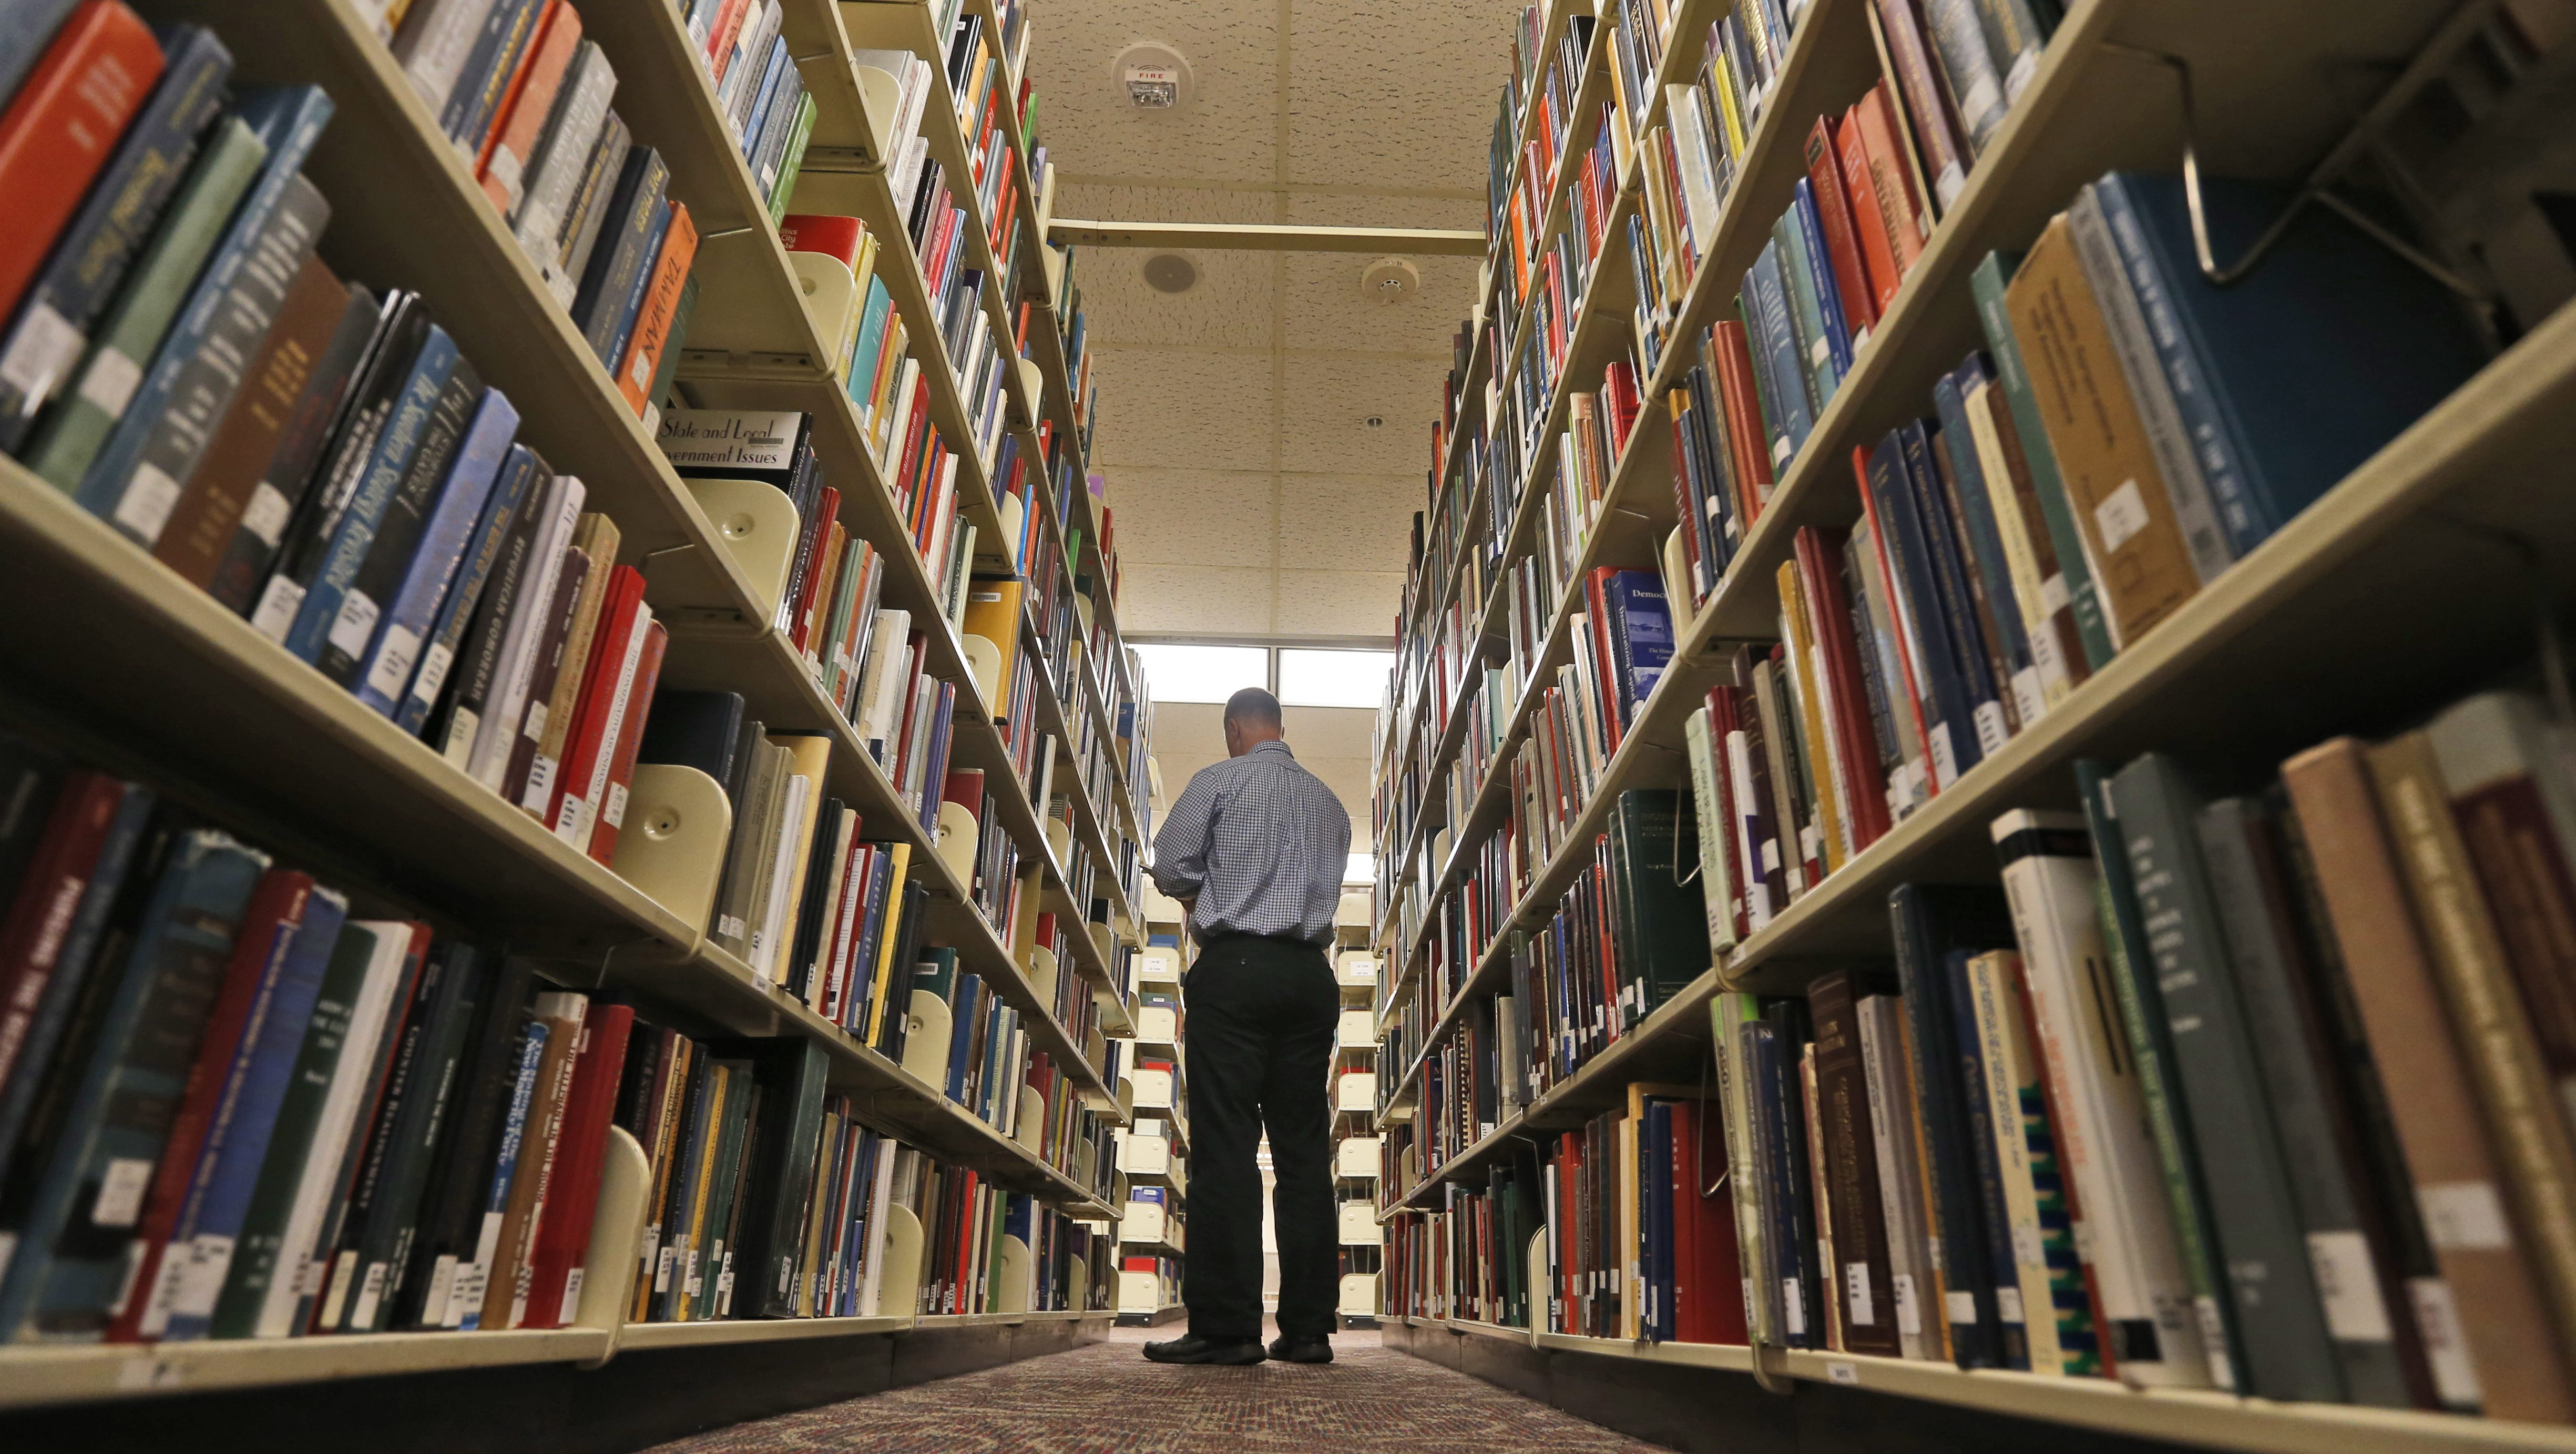 A visitor looks over books in the classic area of the renovated James Branch Cabell library on the campus of Virginia Commonwealth University  in Richmond, Va., Thursday, April 28, 2016.   (AP Photo/Steve Helber)